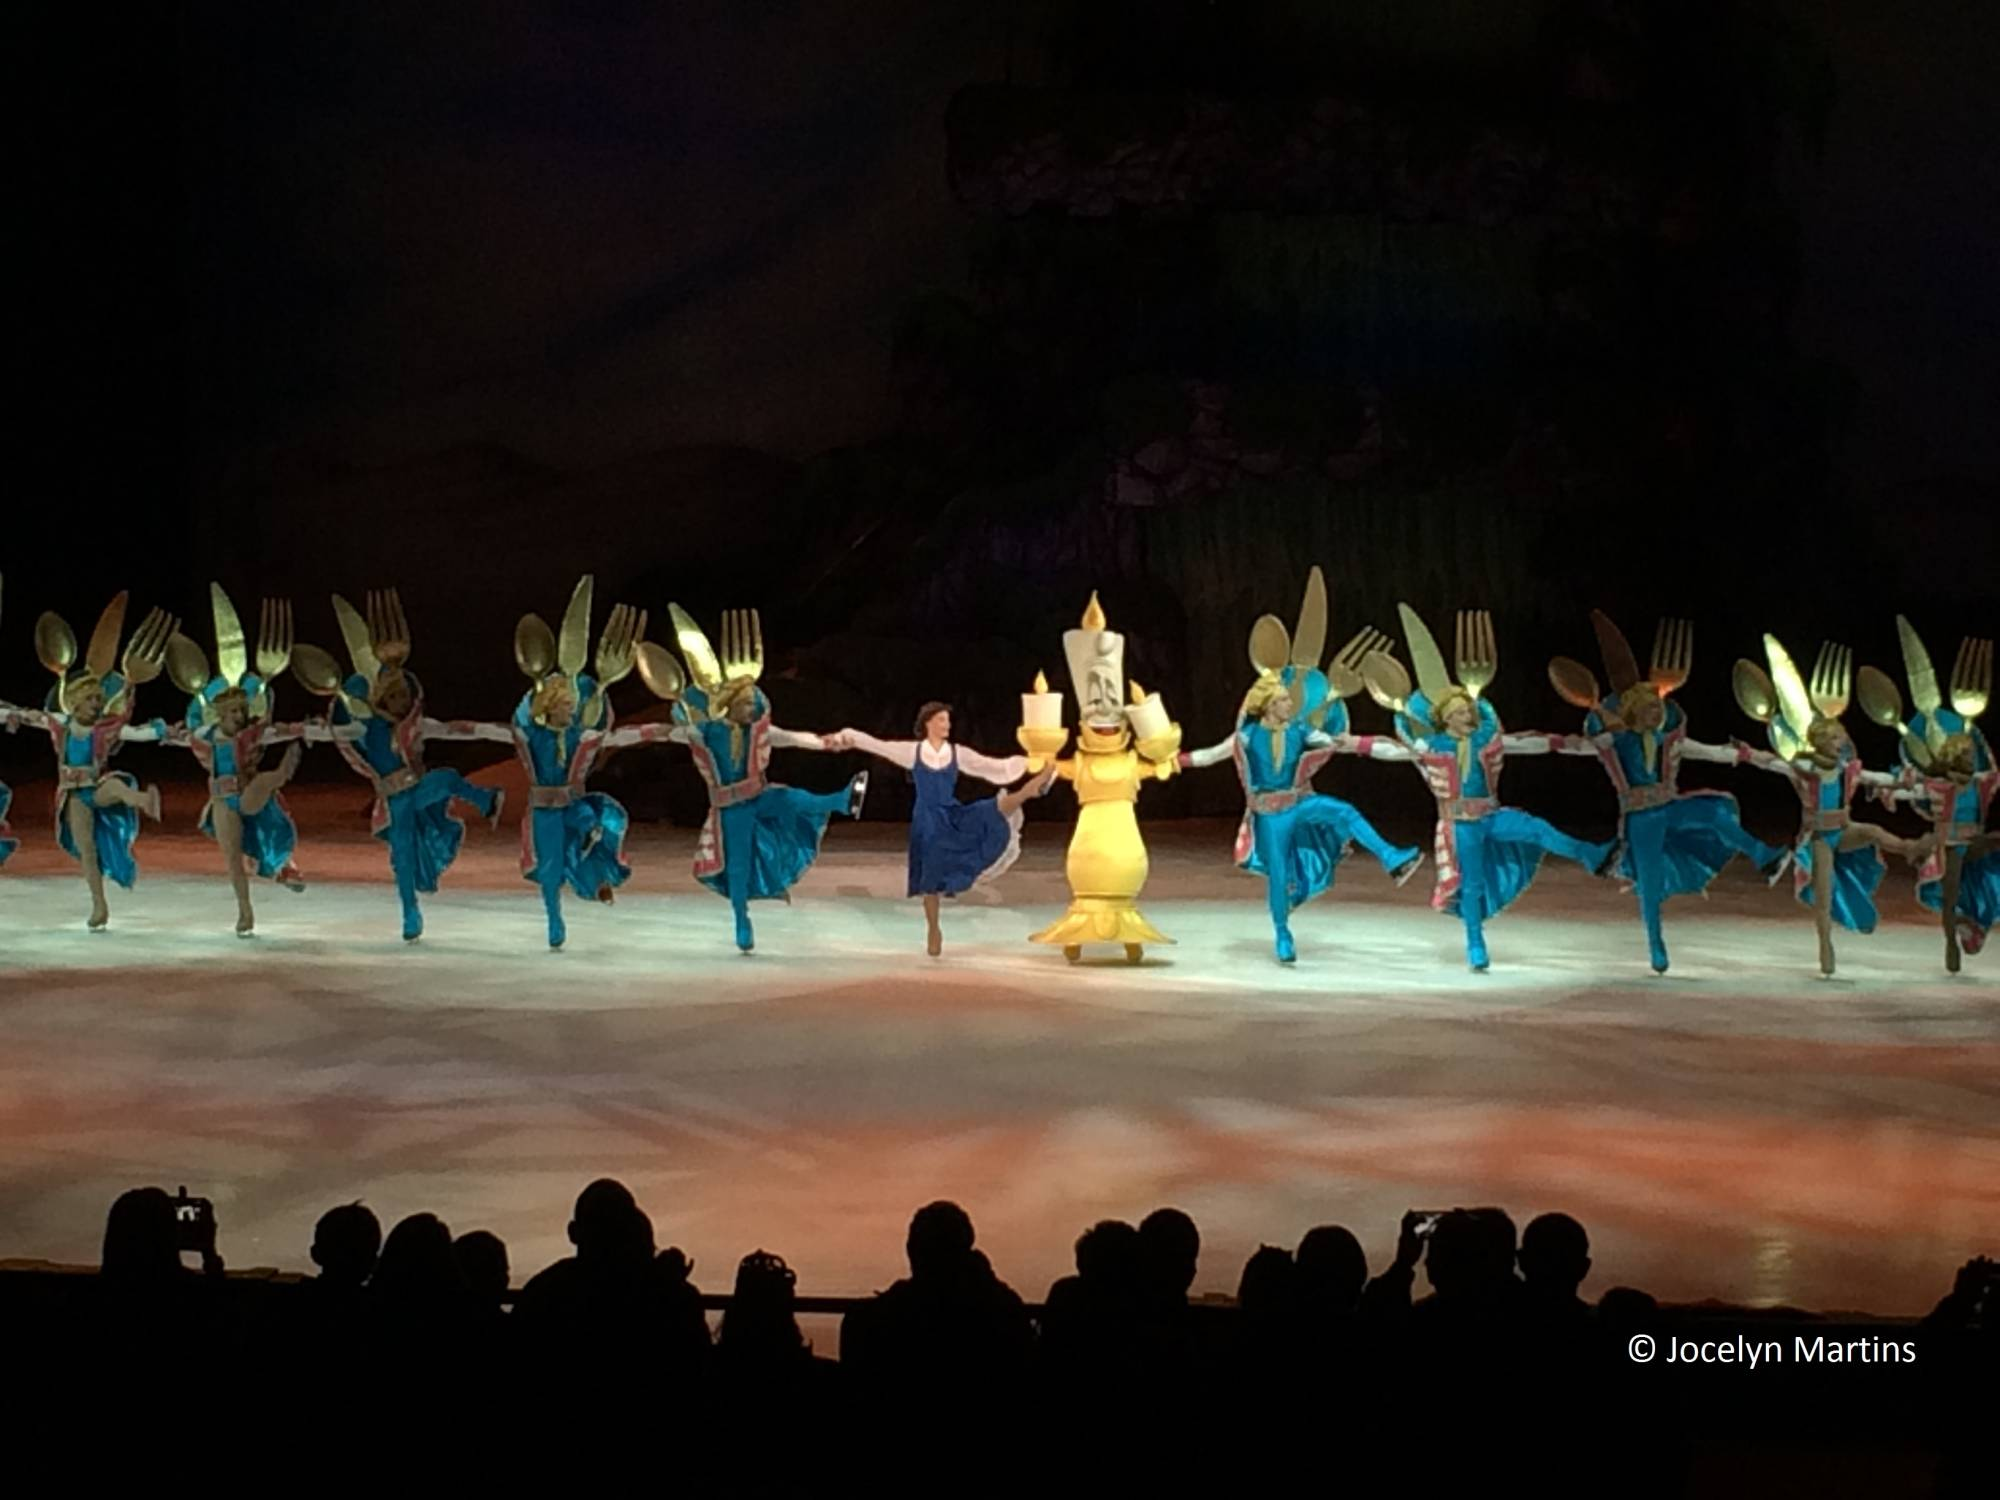 Enjoy a bit of Disney Magic at home with Disney on Ice shows |PassPorter.com